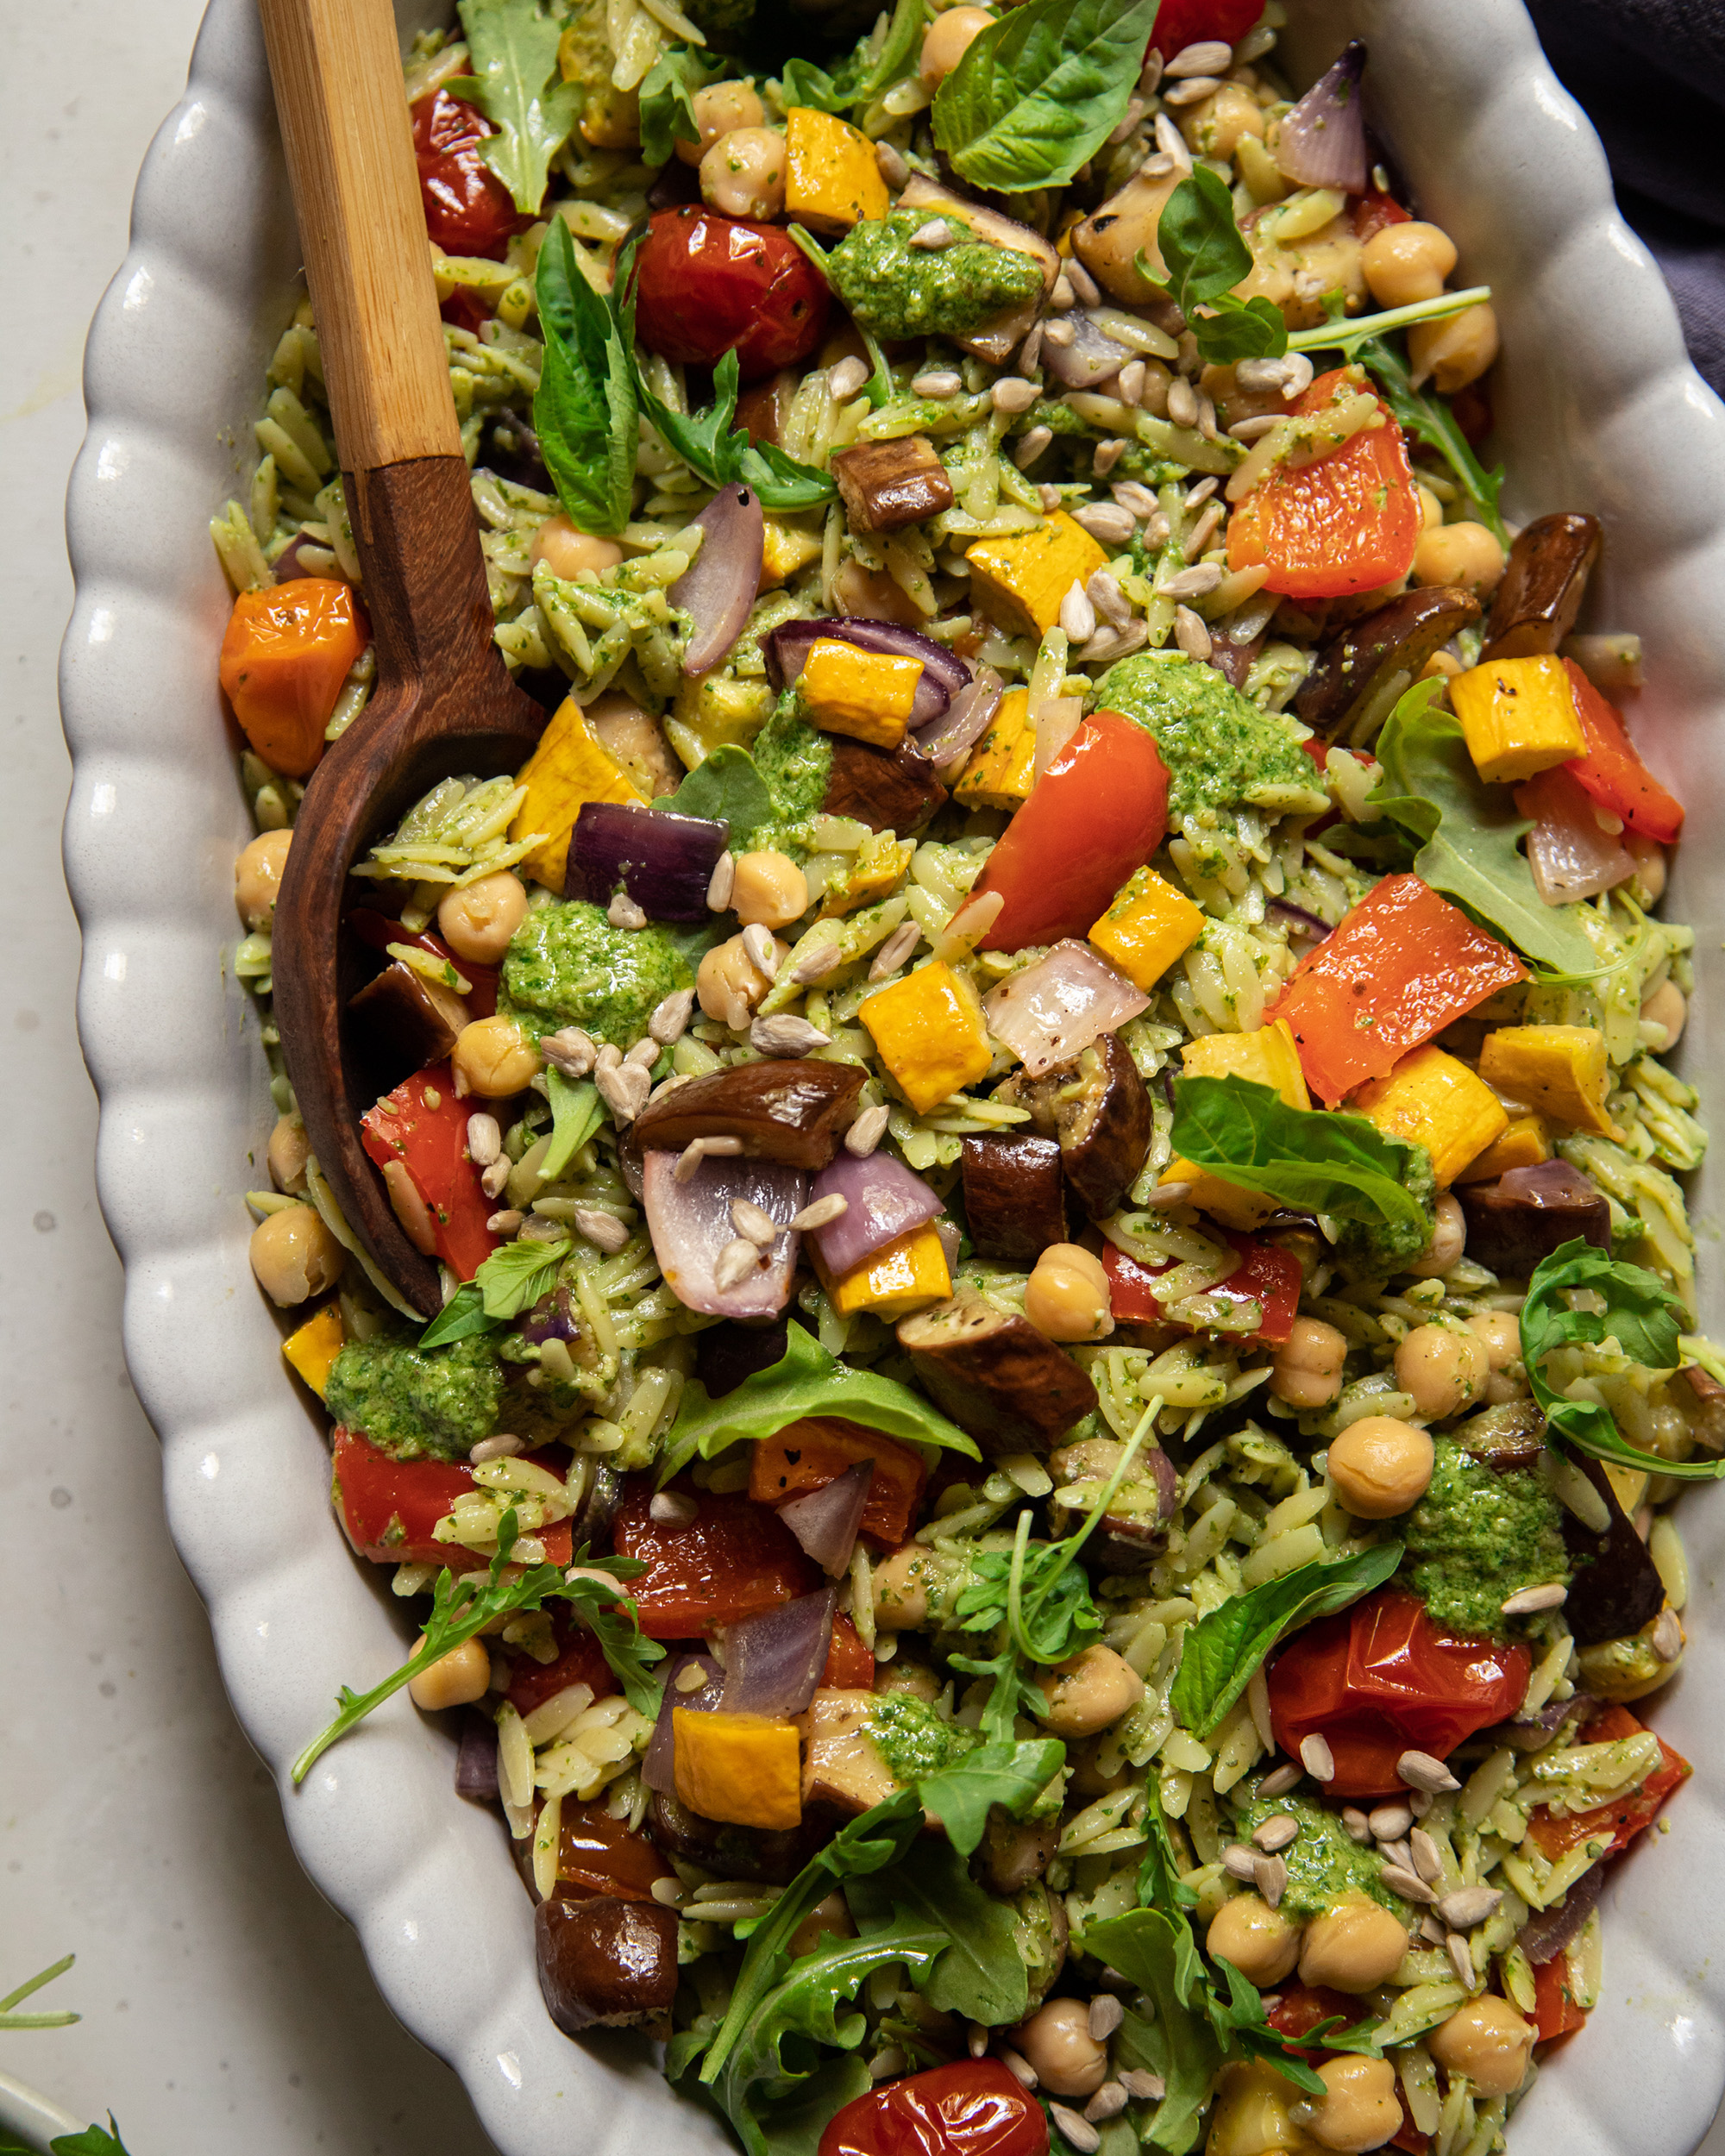 An up close, overhead shot of a pesto orzo salad with dices of roasted vegetables and chickpeas. The dressing is creamy and bright green. There is a wooden spoon sticking out of the dish of salad.